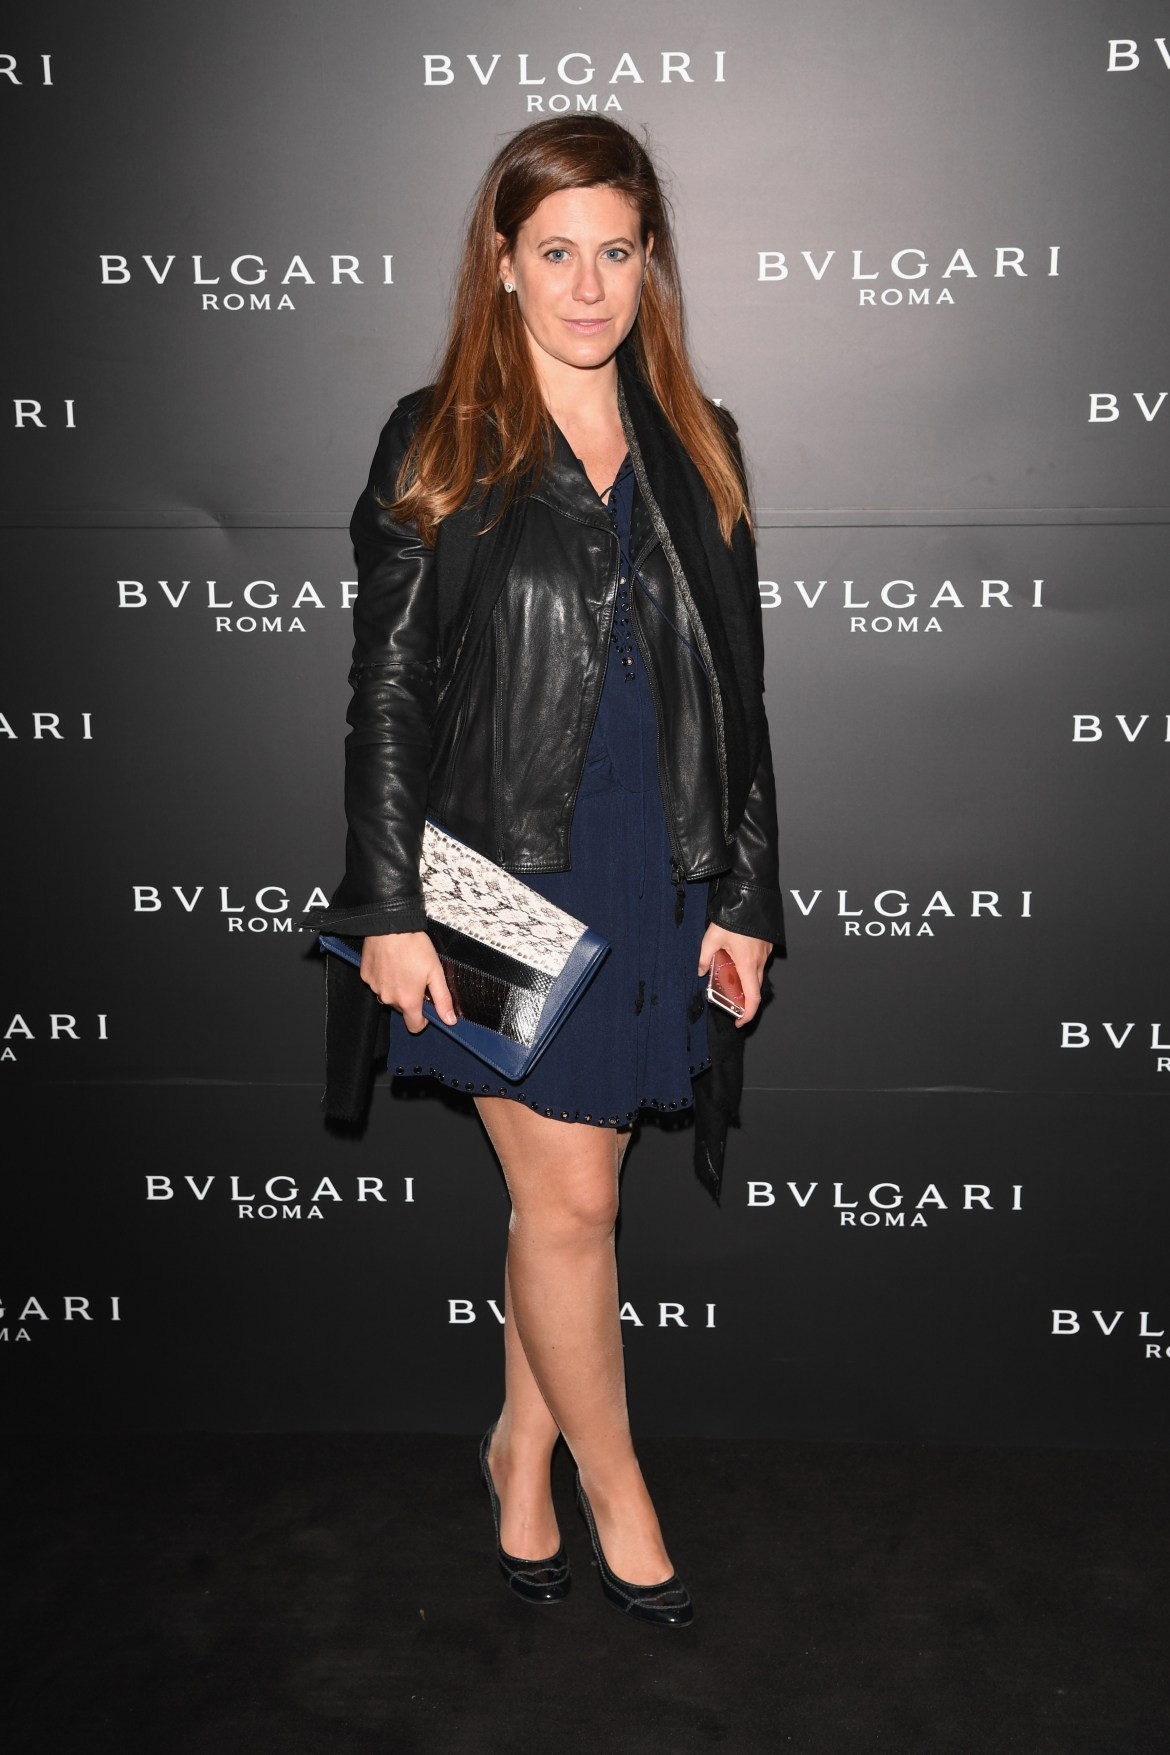 MILAN, ITALY - APRIL 12:  Francesca Versace attends BVLGARI Celebration of B.Zero1 At Milan Design Week at Hotel Bulgari on April 12, 2016 in Milan, Italy.  (Photo by Venturelli/Getty Images for BVLGARI) *** Local Caption *** Francesca Versace